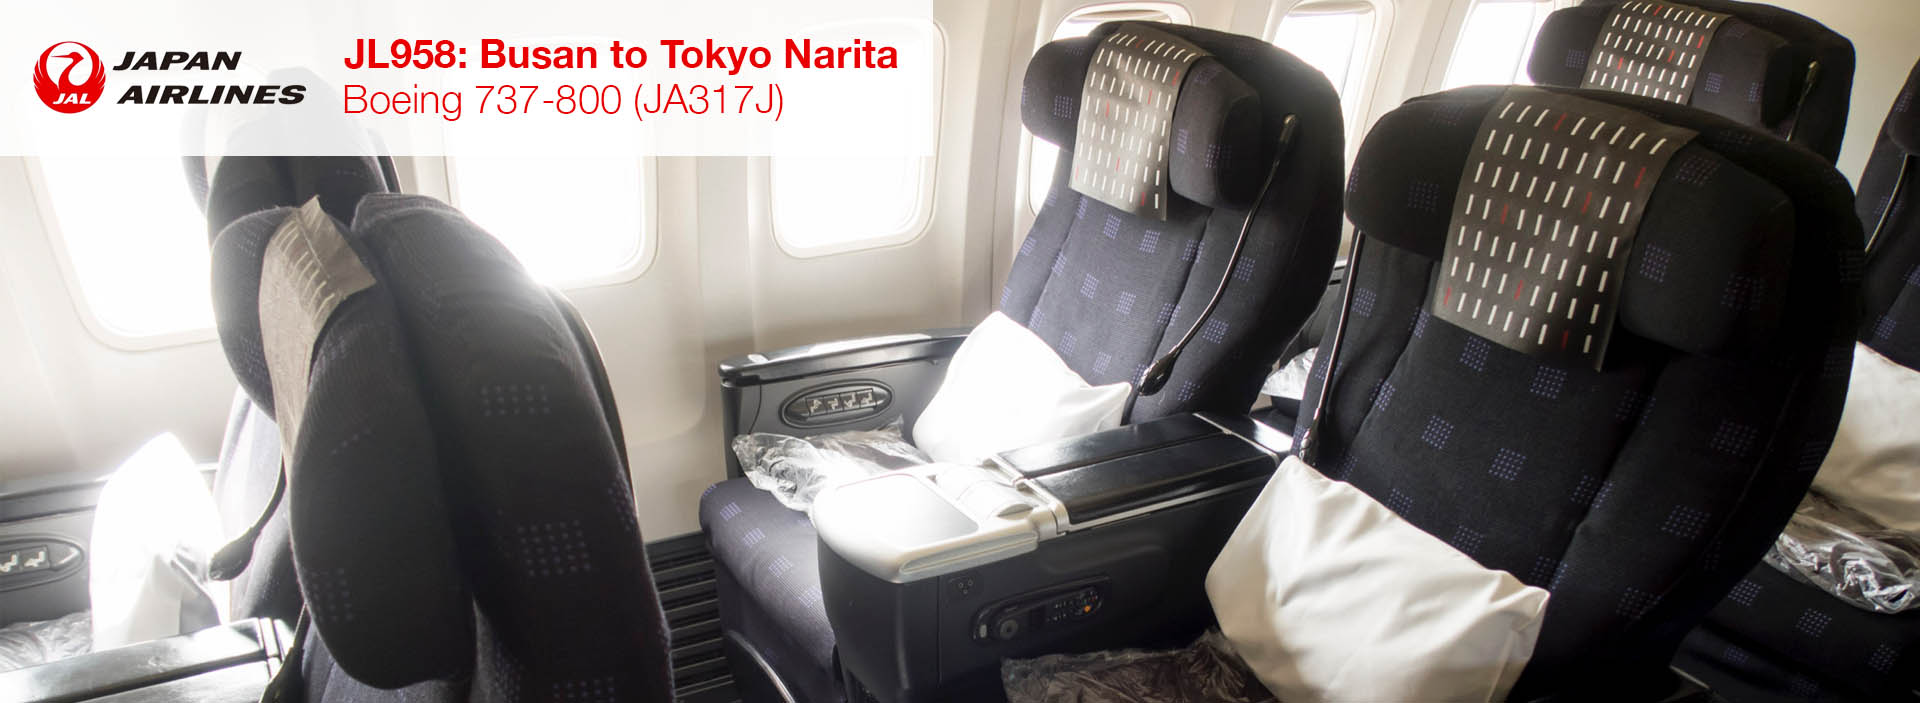 Review: JAL 737-800 Business Class from Busan to Tokyo Narita